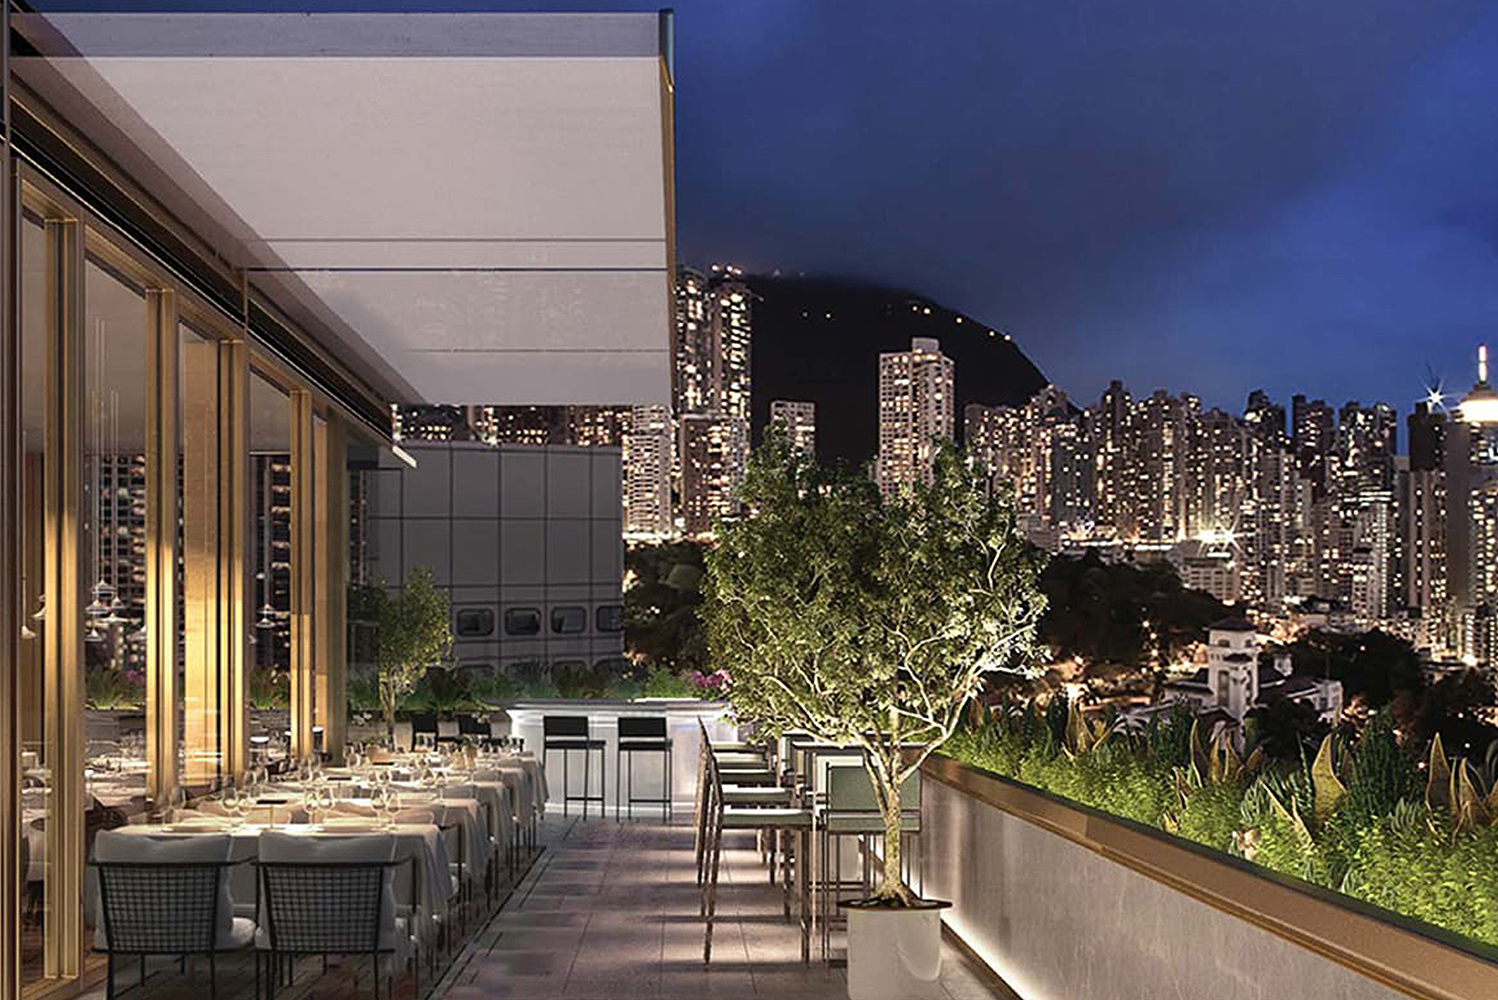 There is a rooftop bar with views of the business district's skyline and The Peak.